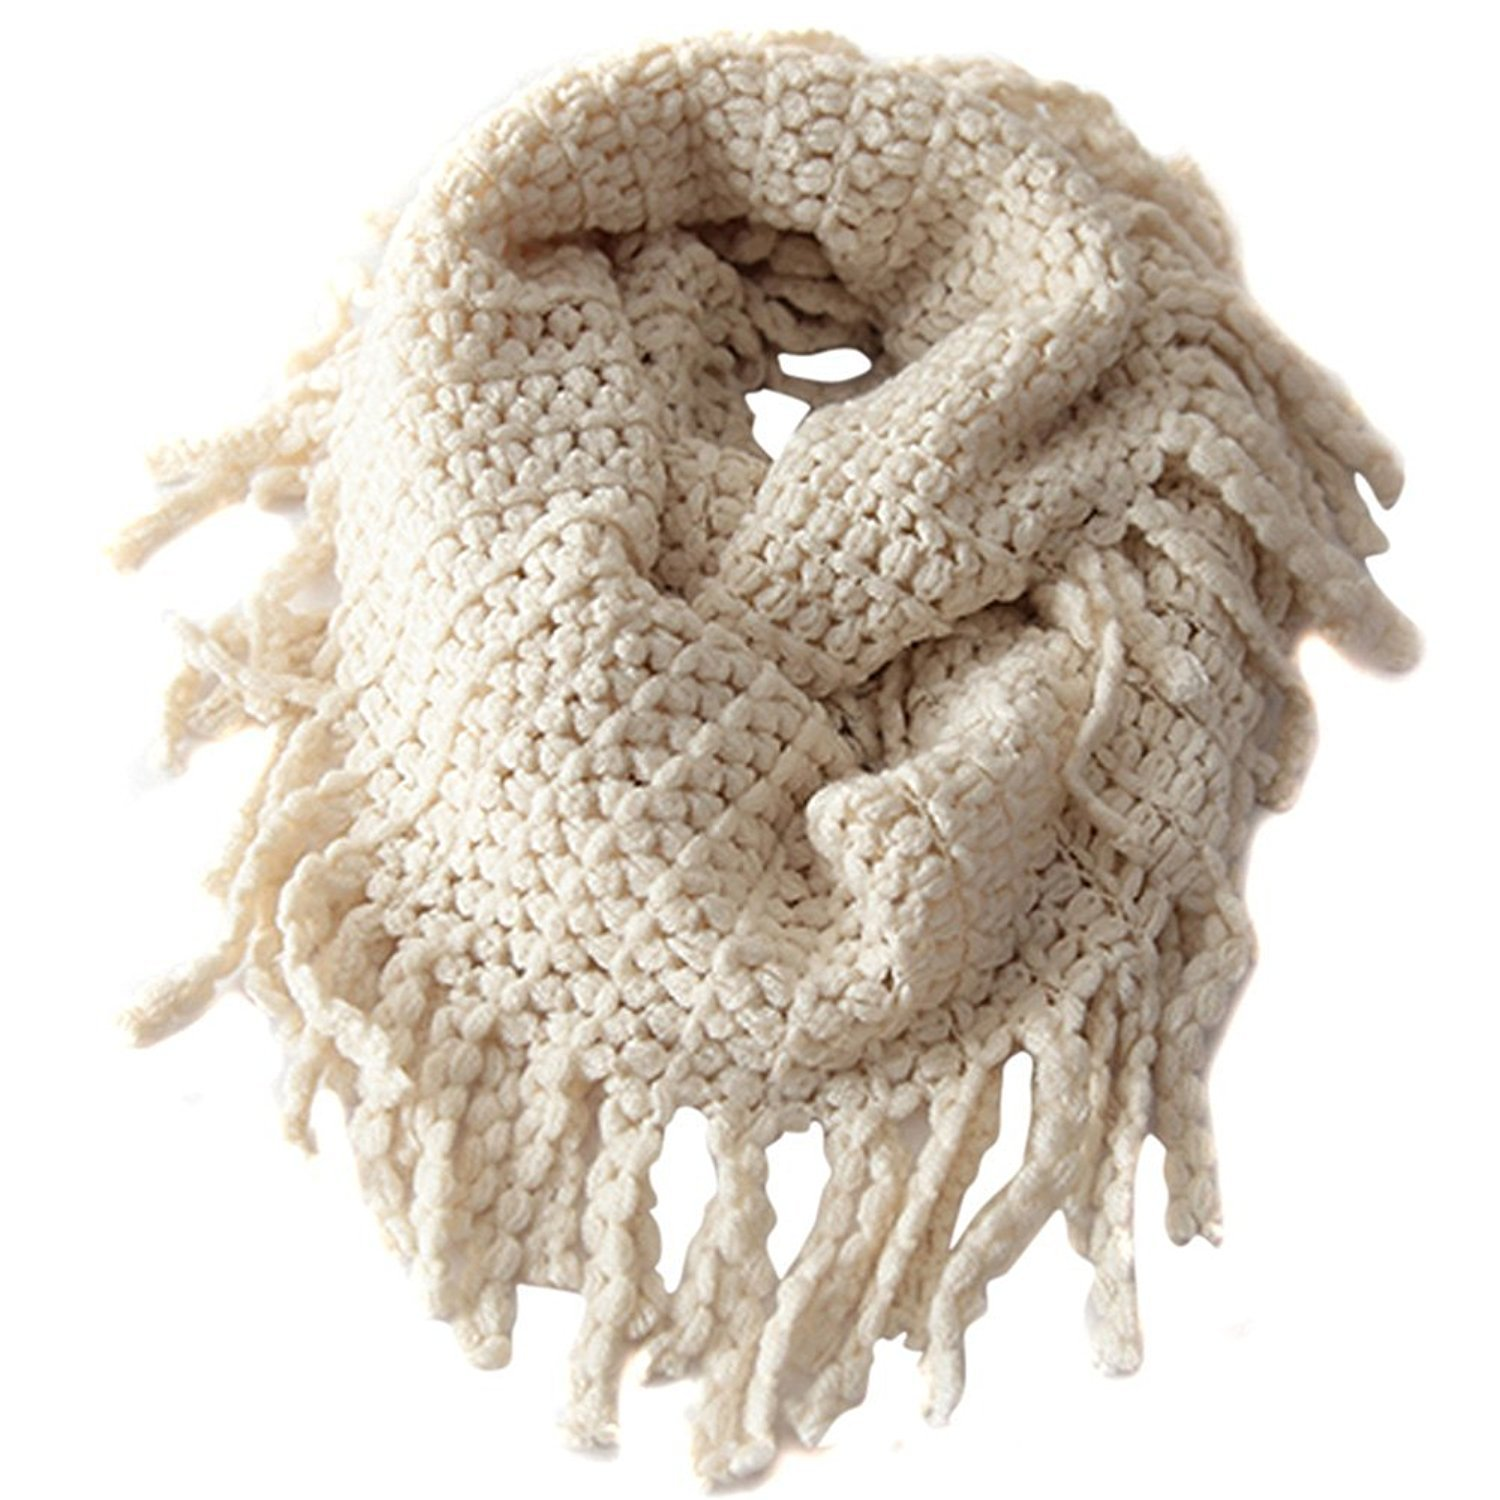 TININNA Fashionable Autumn Winter Kids Toddler Knit Warmer Tassels Neck Scarf Circle Loop Round Scarves Shawl - Beige EUBUY